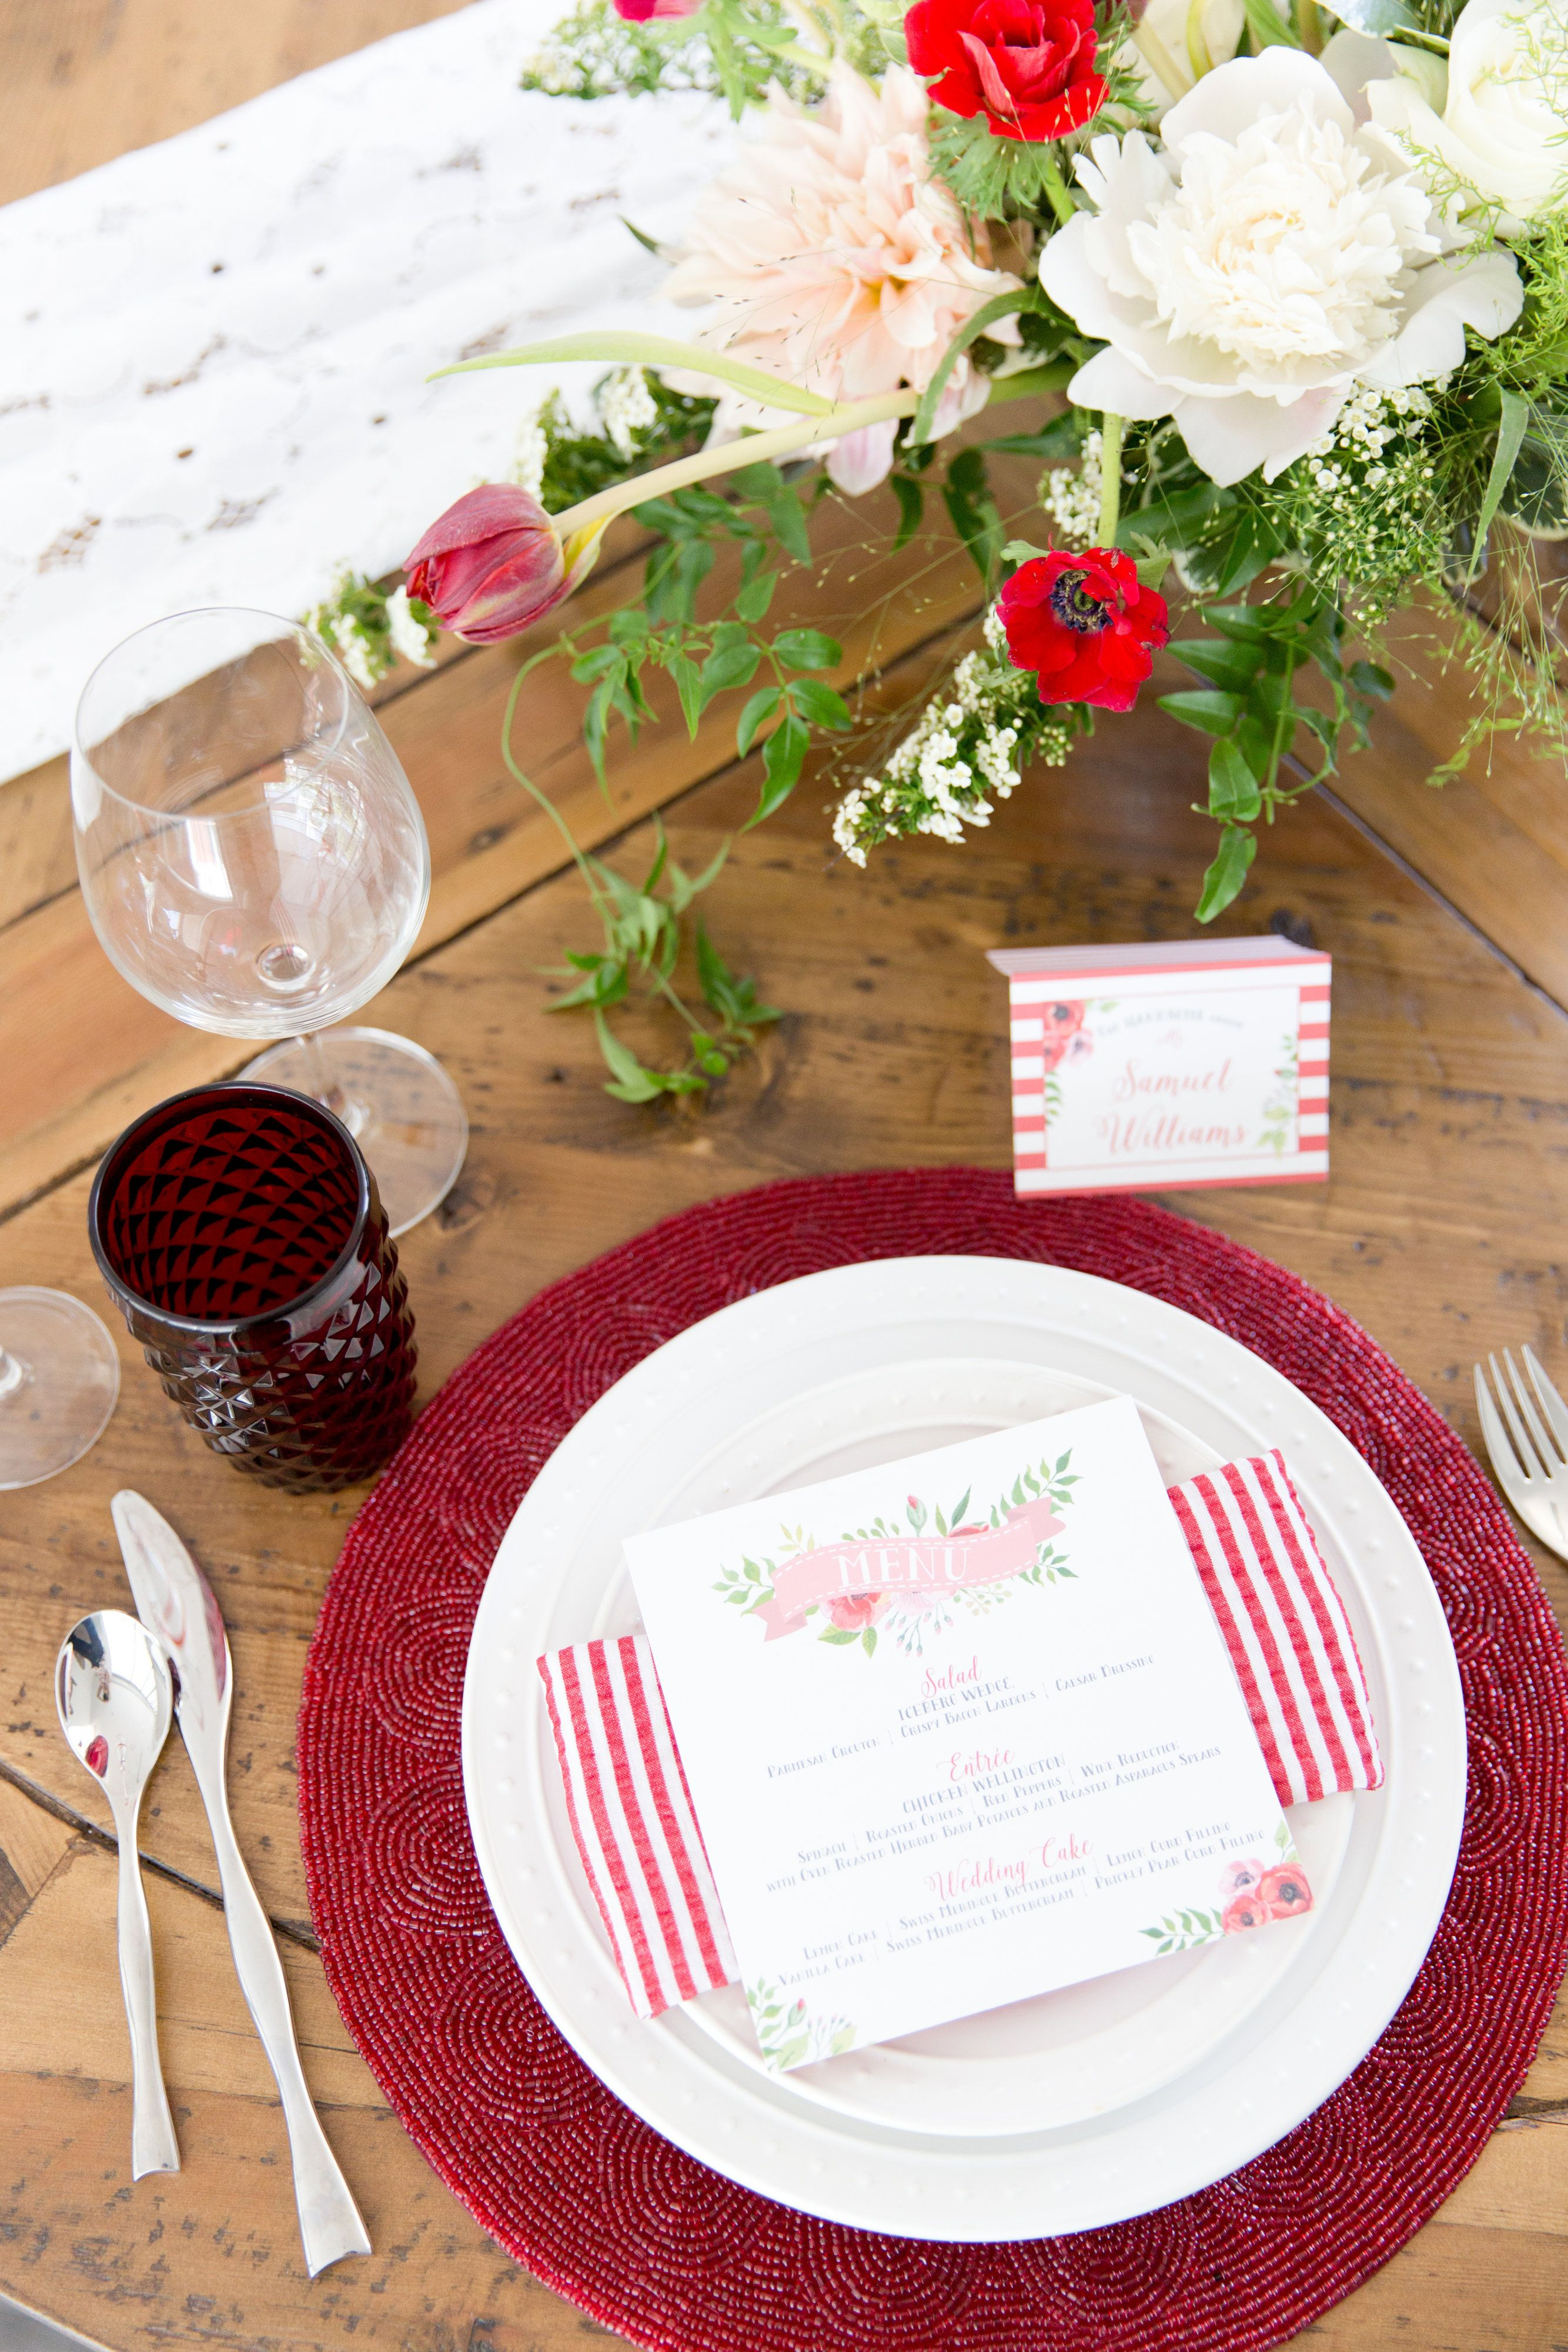 Red beaded placement with classic white dinnerware. & Red beaded placement with classic white dinnerware. | Tabletops ...